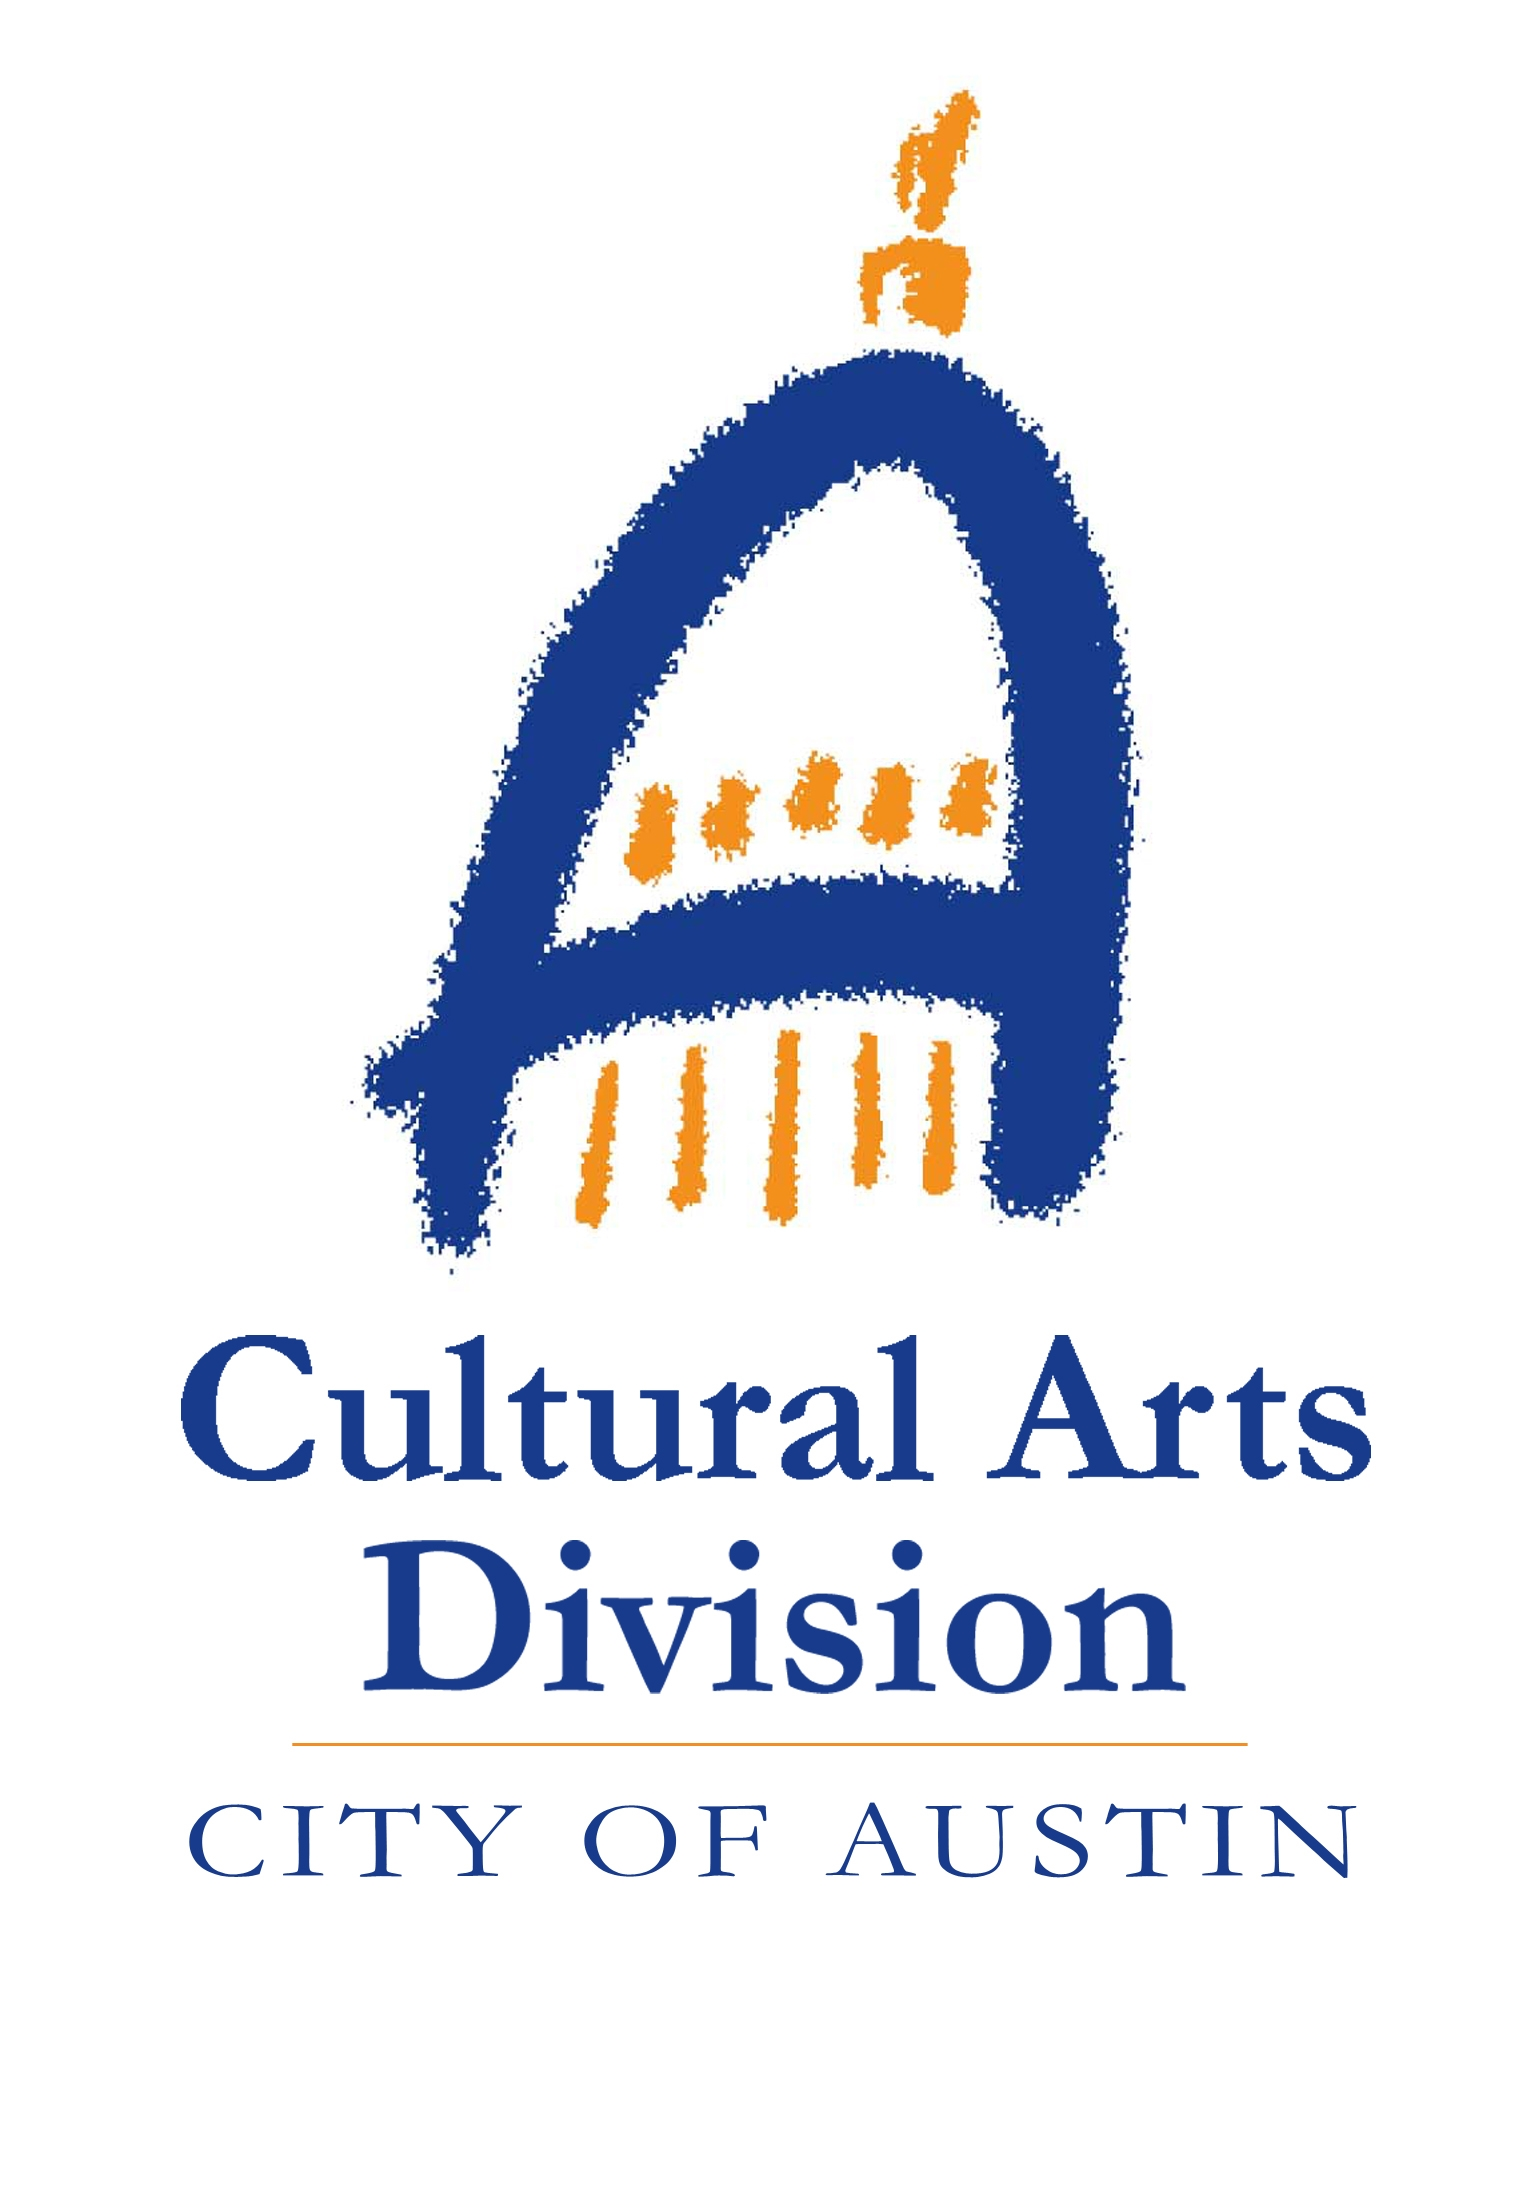 City of Austin Cultural Arts Division.jpg